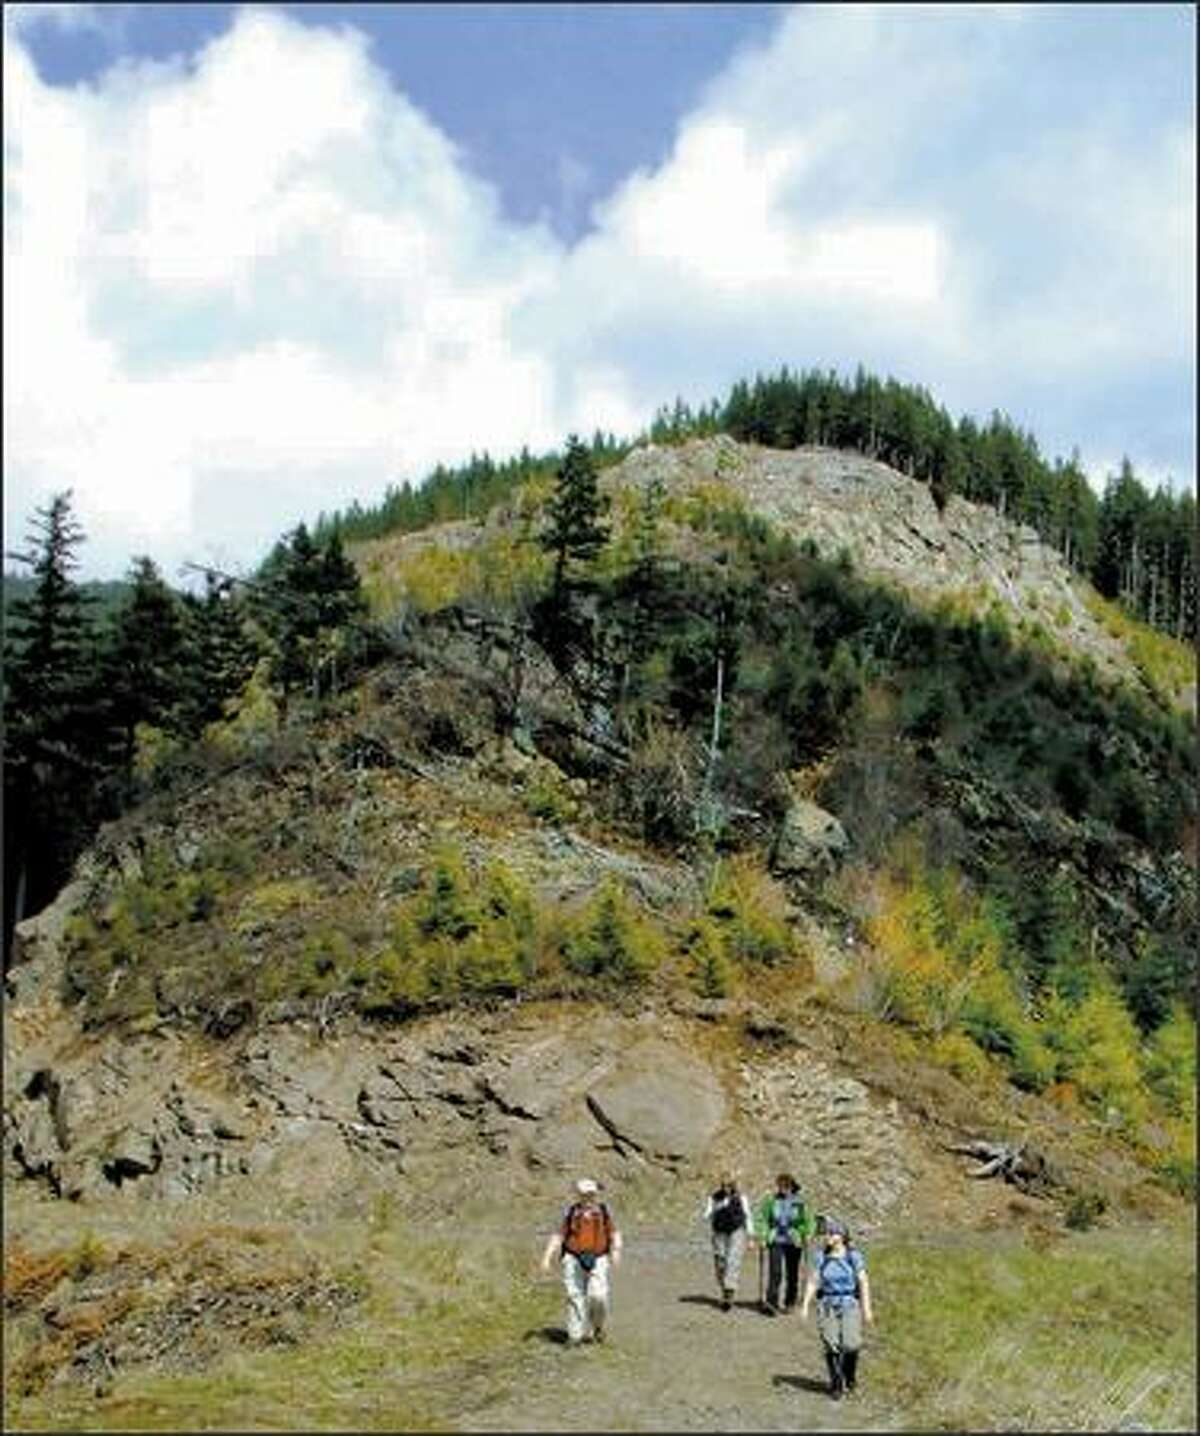 Clearcutting has laid bare the rocky ribs of a ridge along the Christoff Trail.